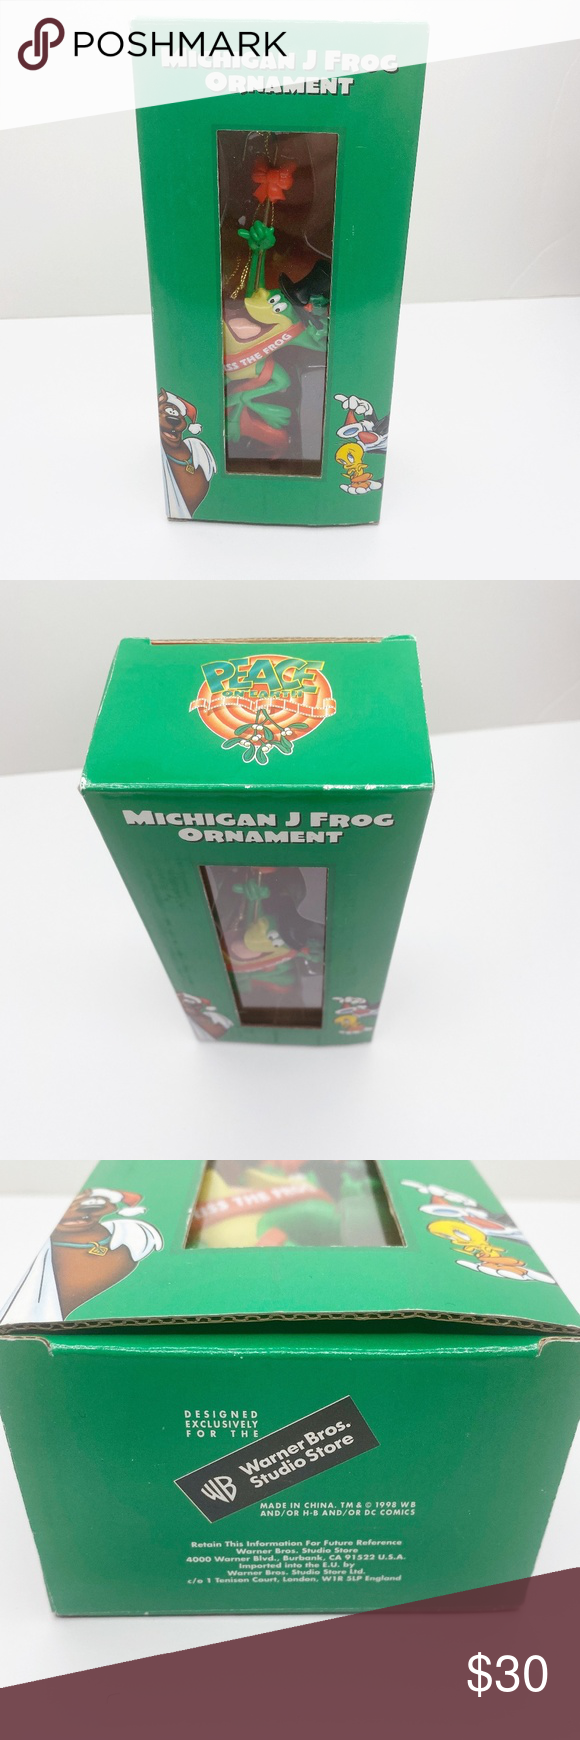 Warner Bros | Michigan J Frog Vintage Ornament Condition: NIB new in box  Vintage Michigan J Frog ornament from Warner Bros Studio Store  Copyright 1998 Warner Bros. Holiday Ornaments #warnerbros